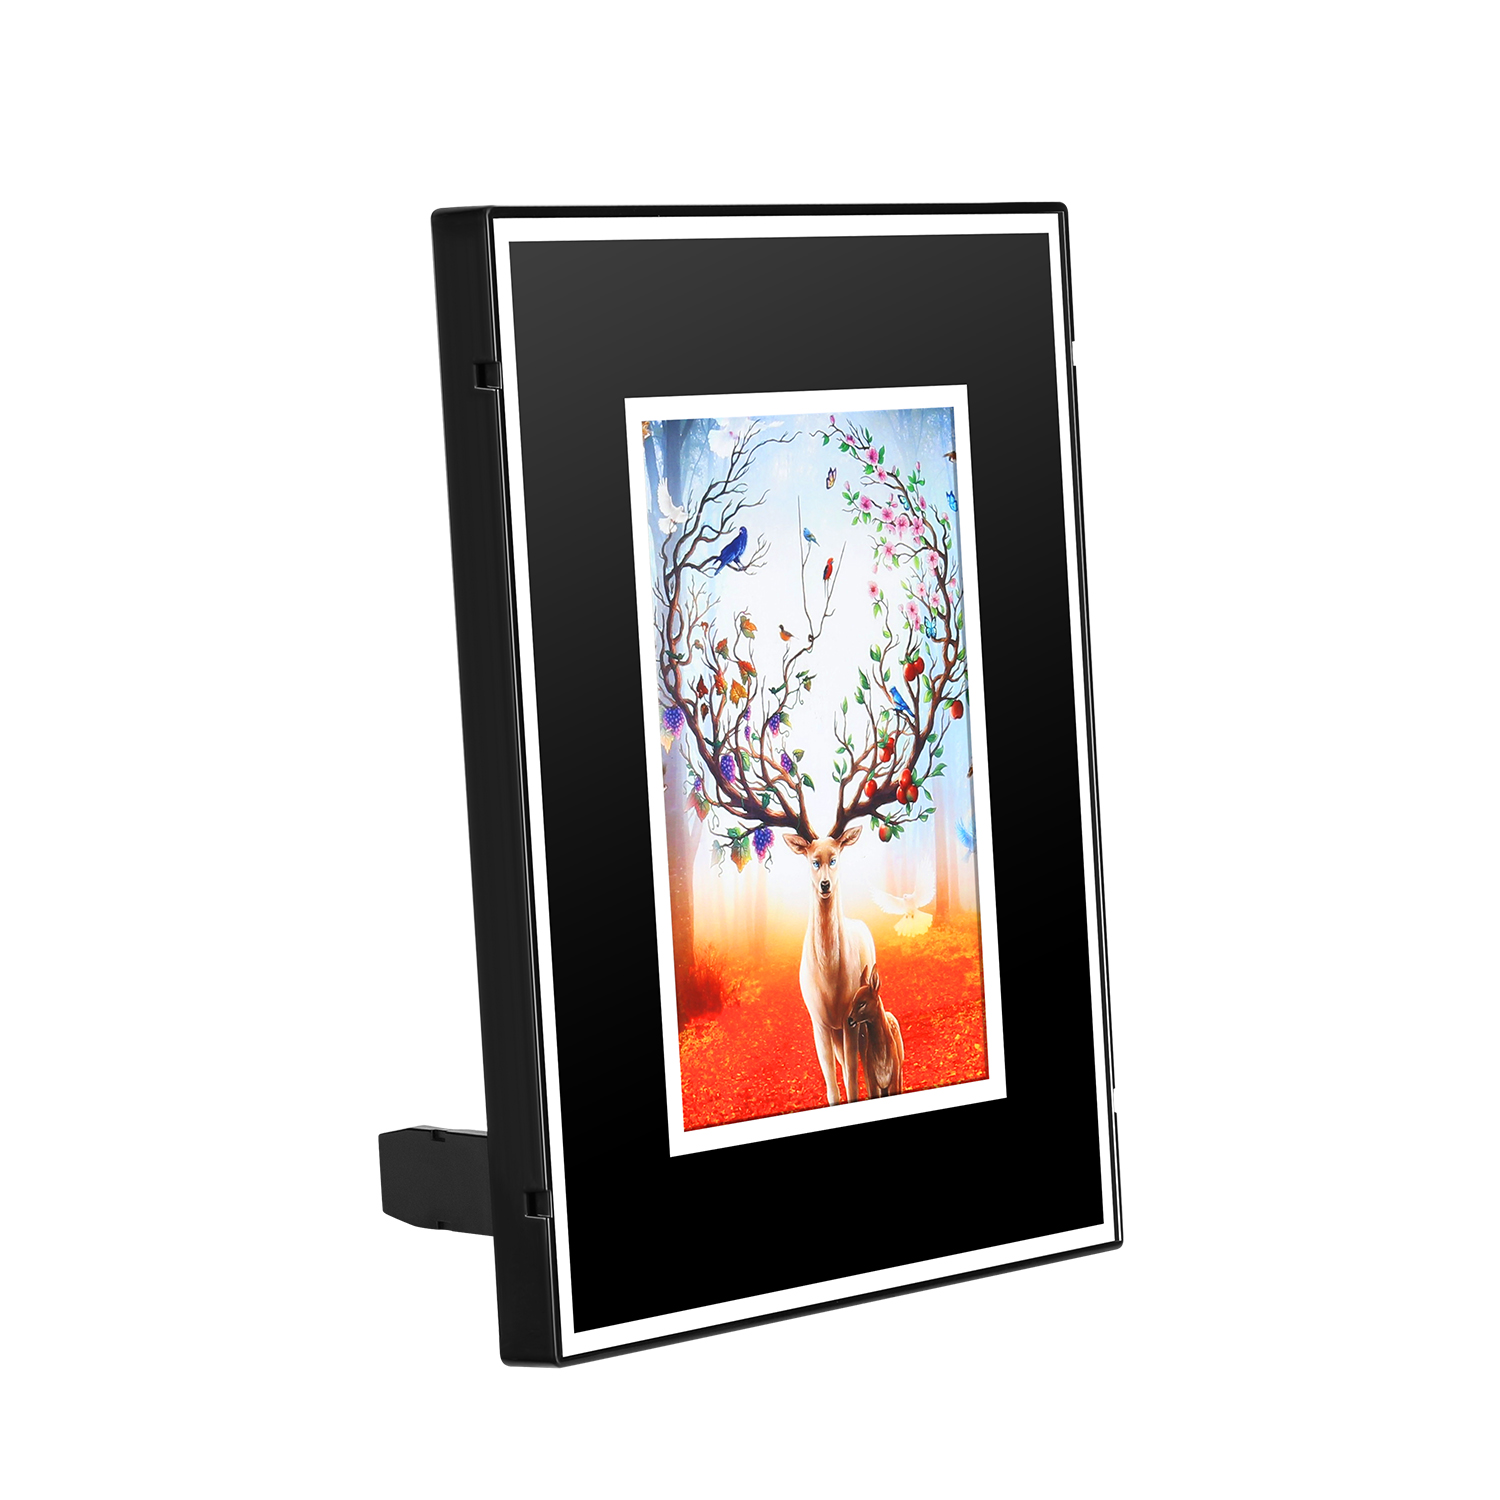 QZT 2019 new design 1080 p wifi photo frame spy 카메라